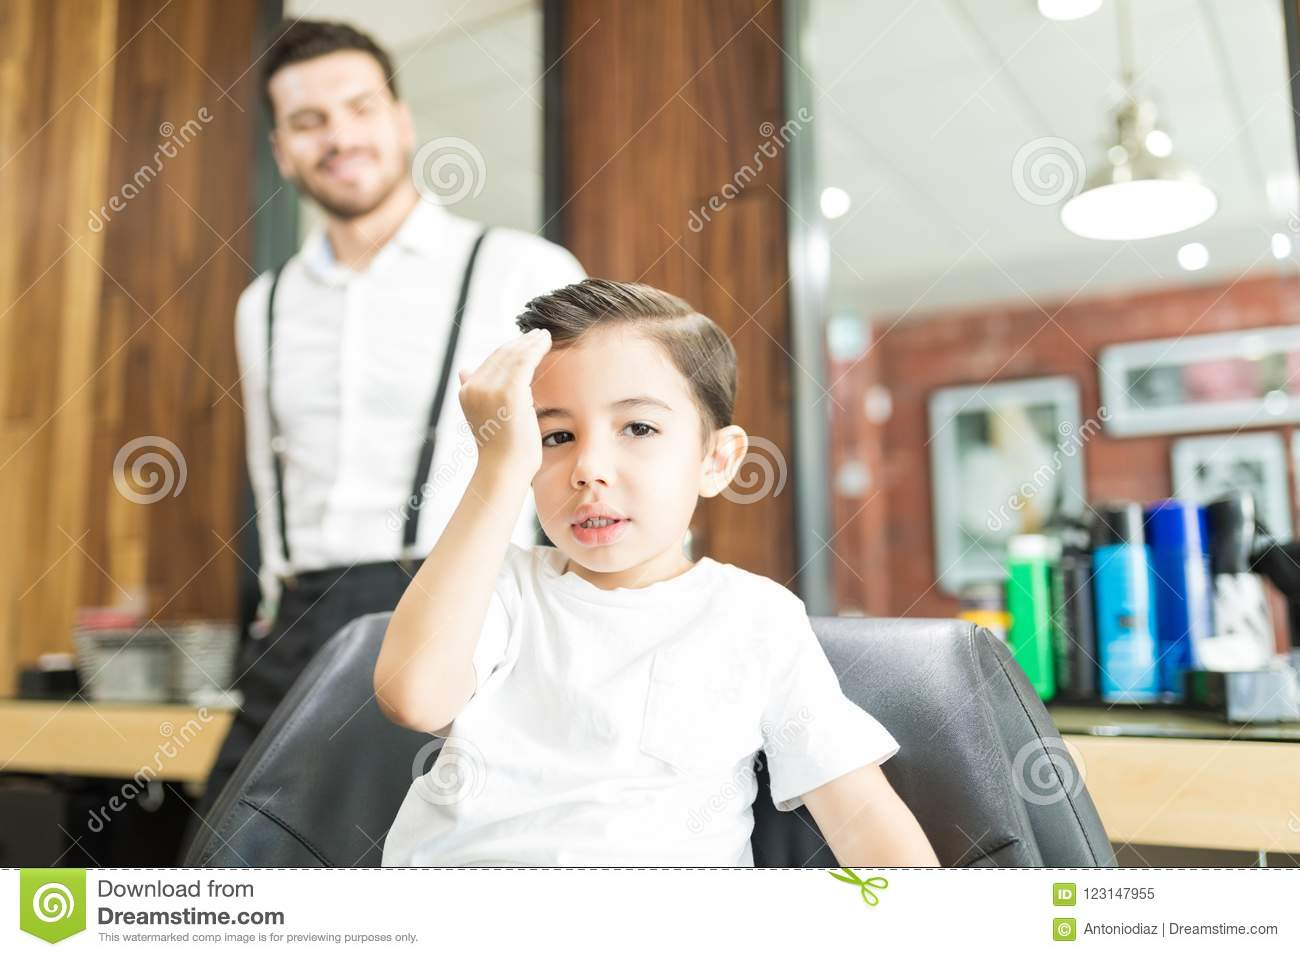 Fashionable Boy Touching Hair After Haircut In Barber Shop Stock